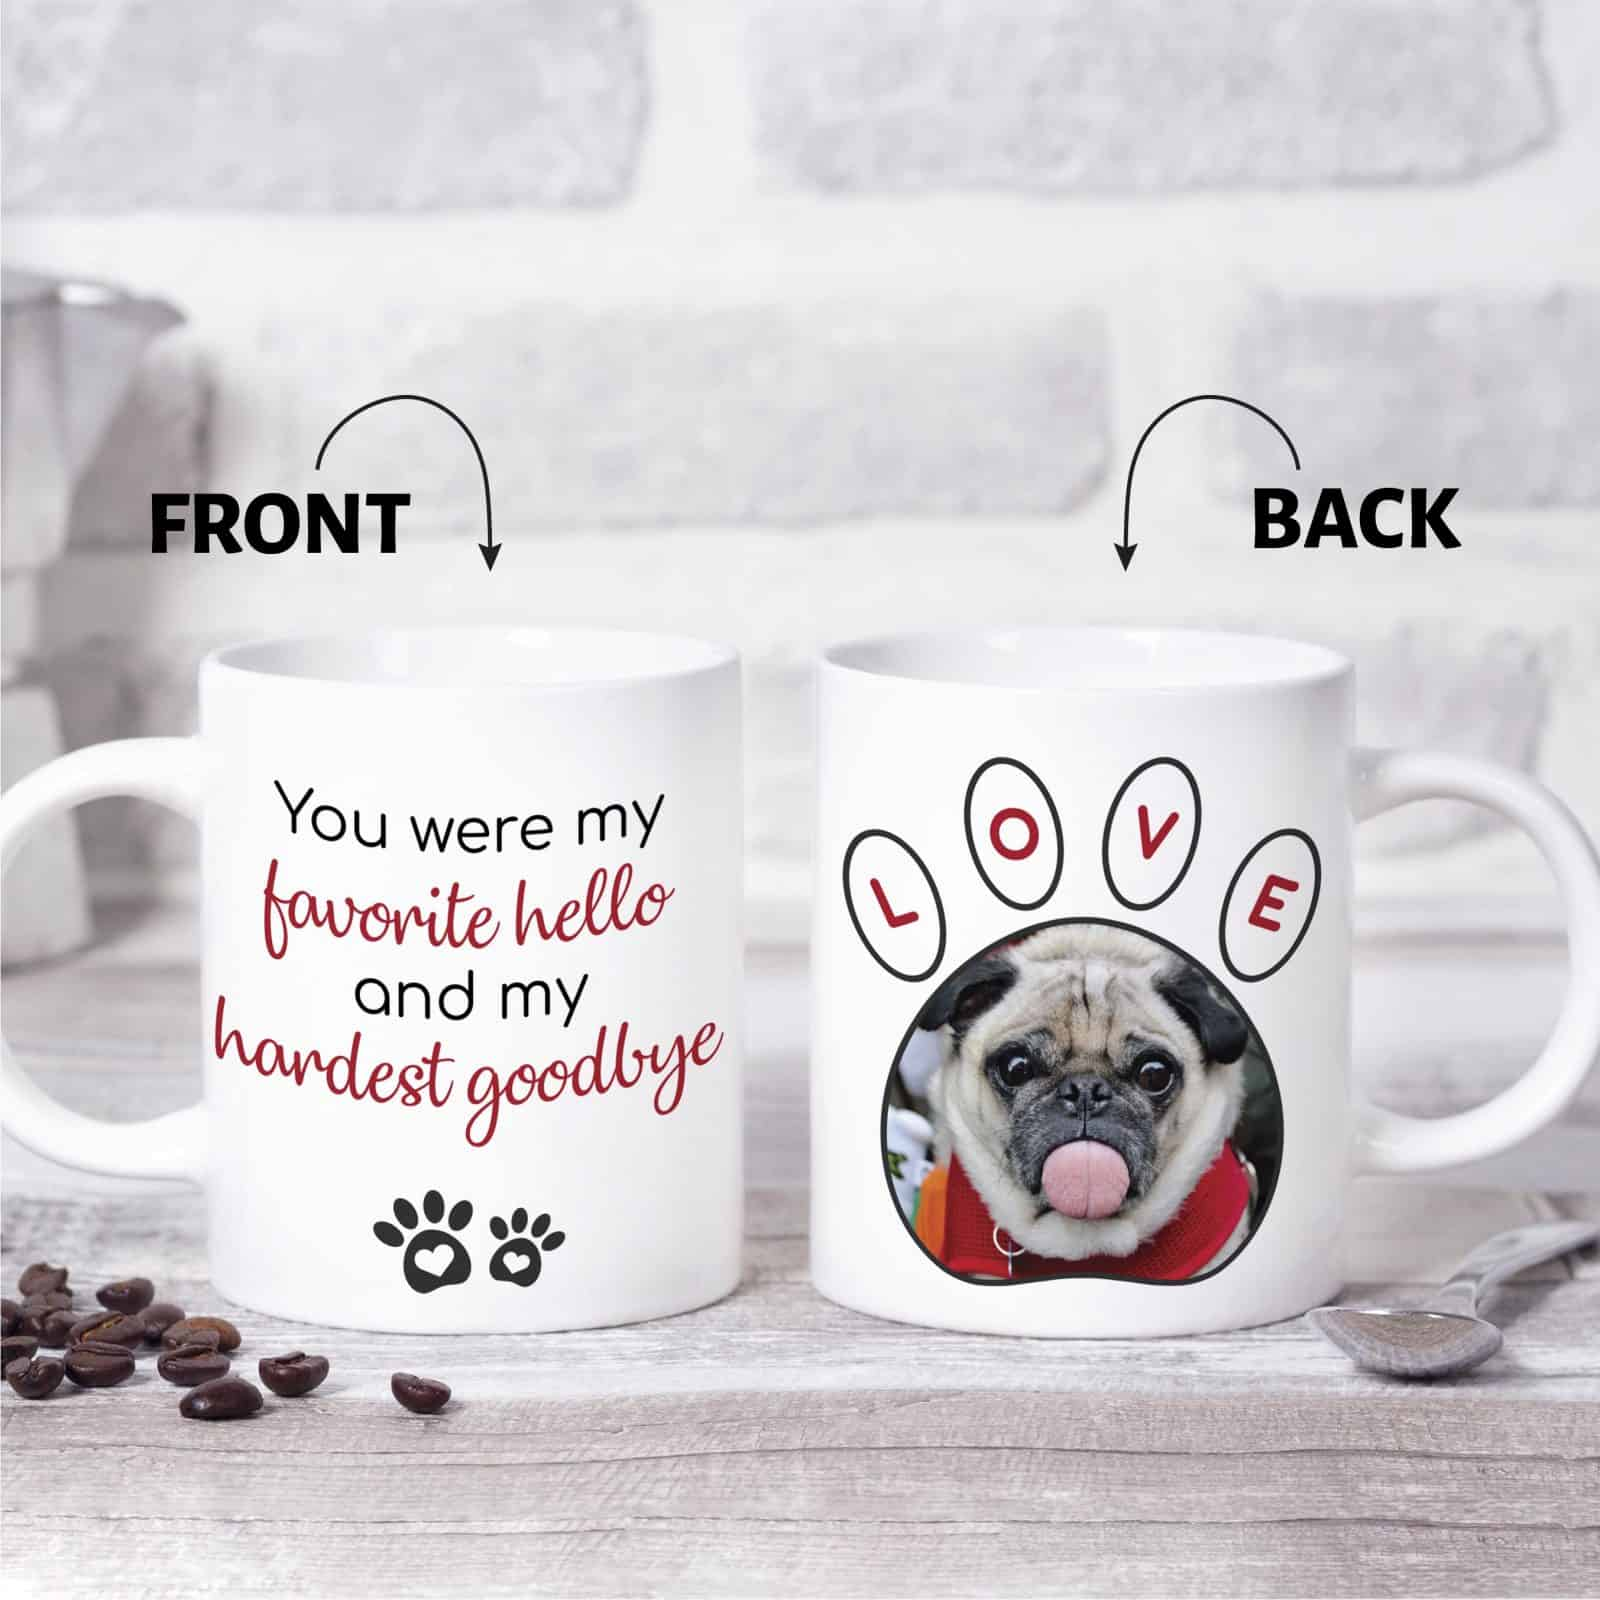 you were my favorite hello and my hardest goodbye custom photo mug gift for pet lovers